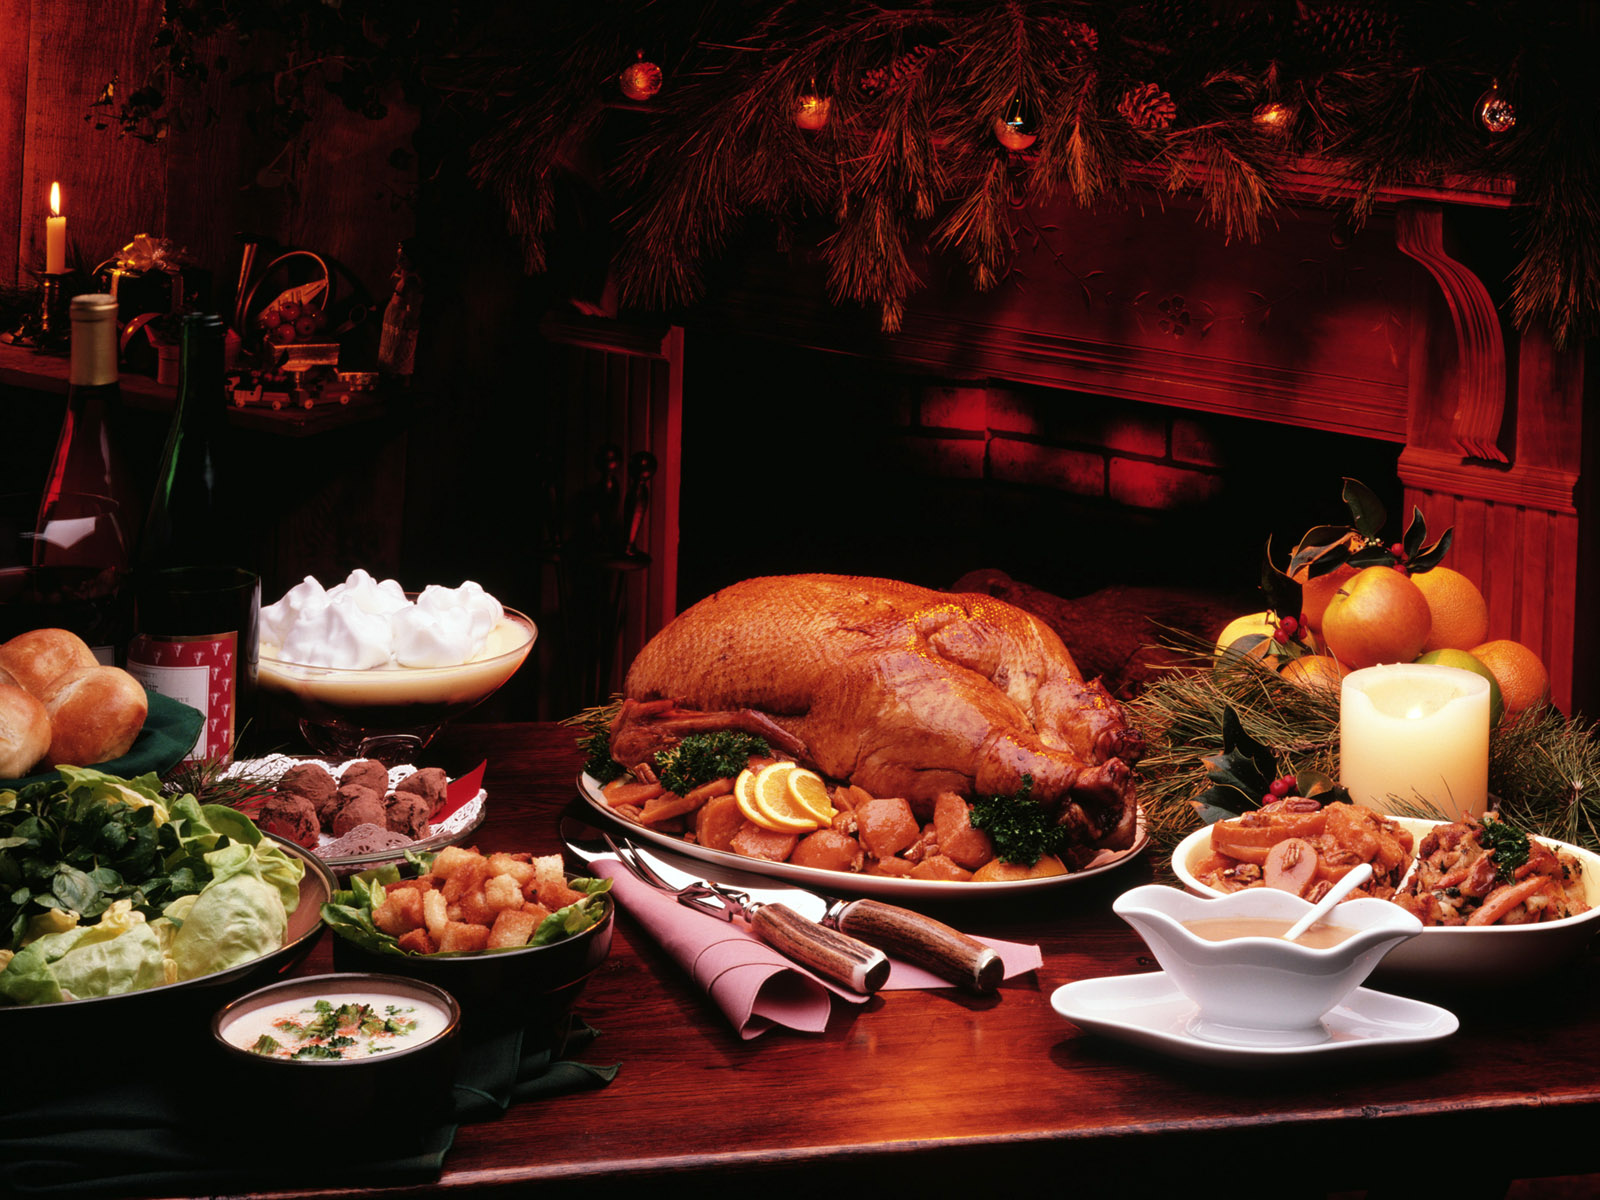 thanksgiving food pictures - HD1600×1200